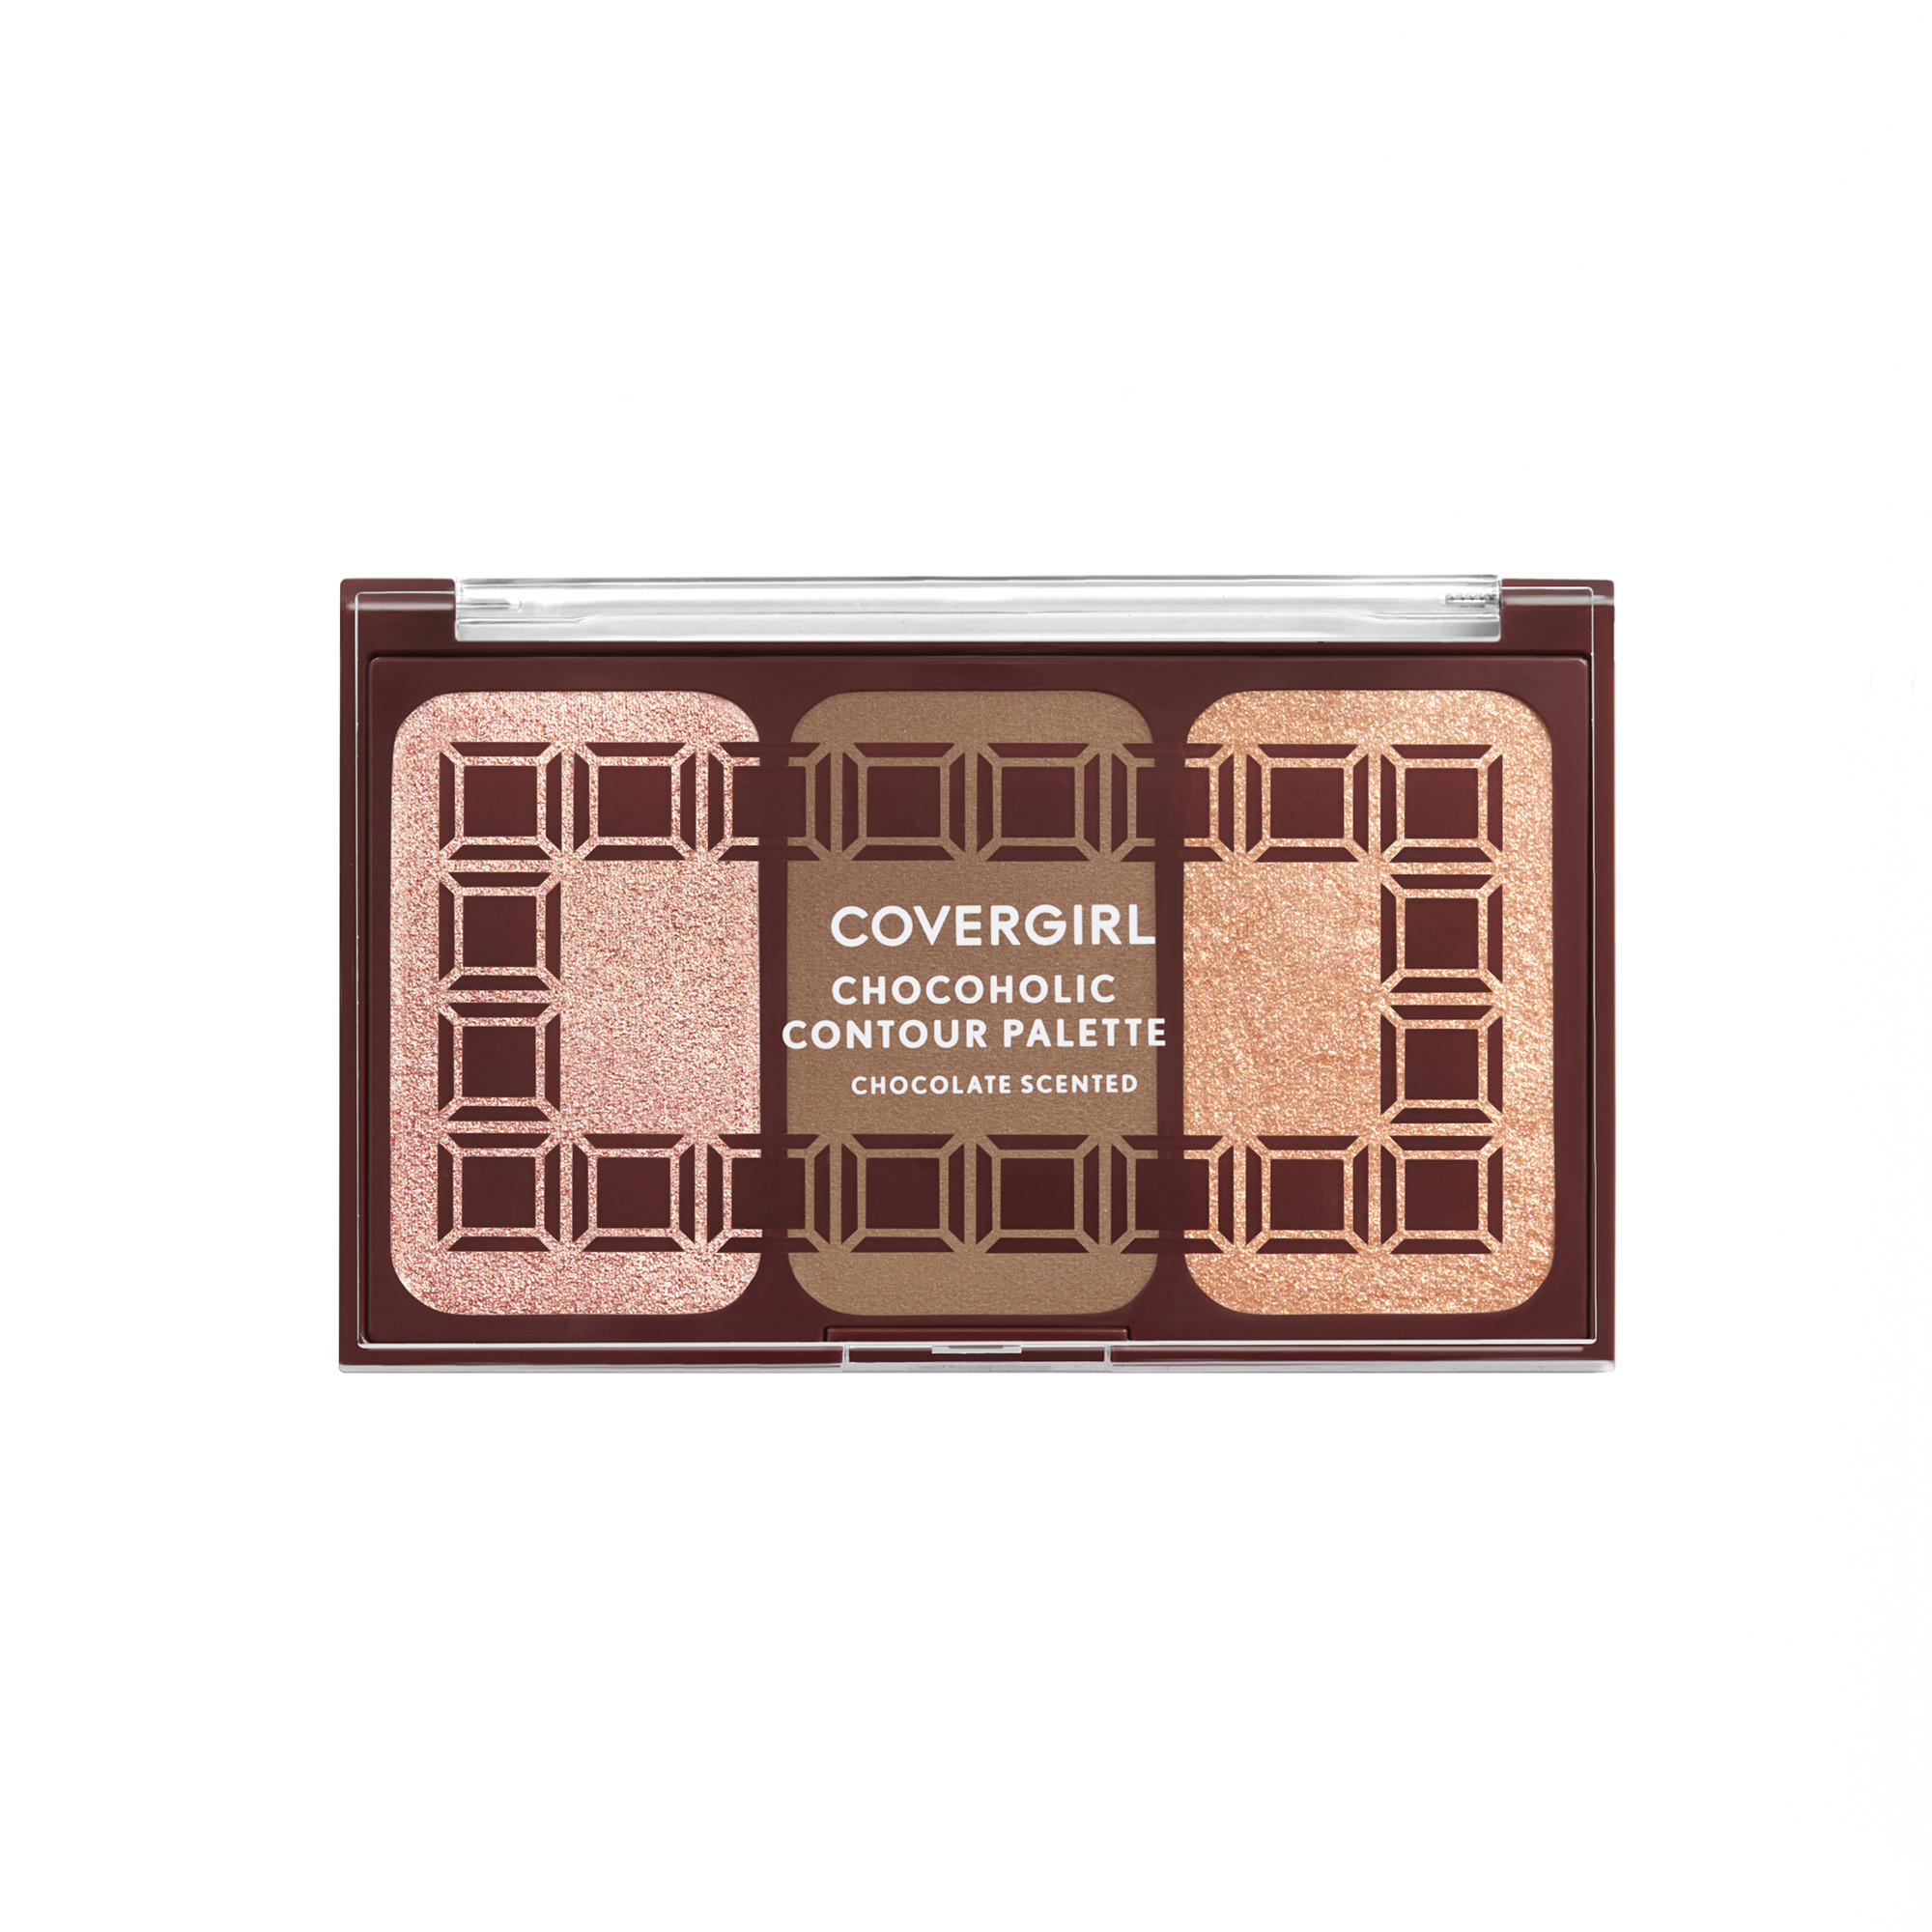 COVERGIRL Chocolate Scented Collection, Chocoholic Contour Palette, 140